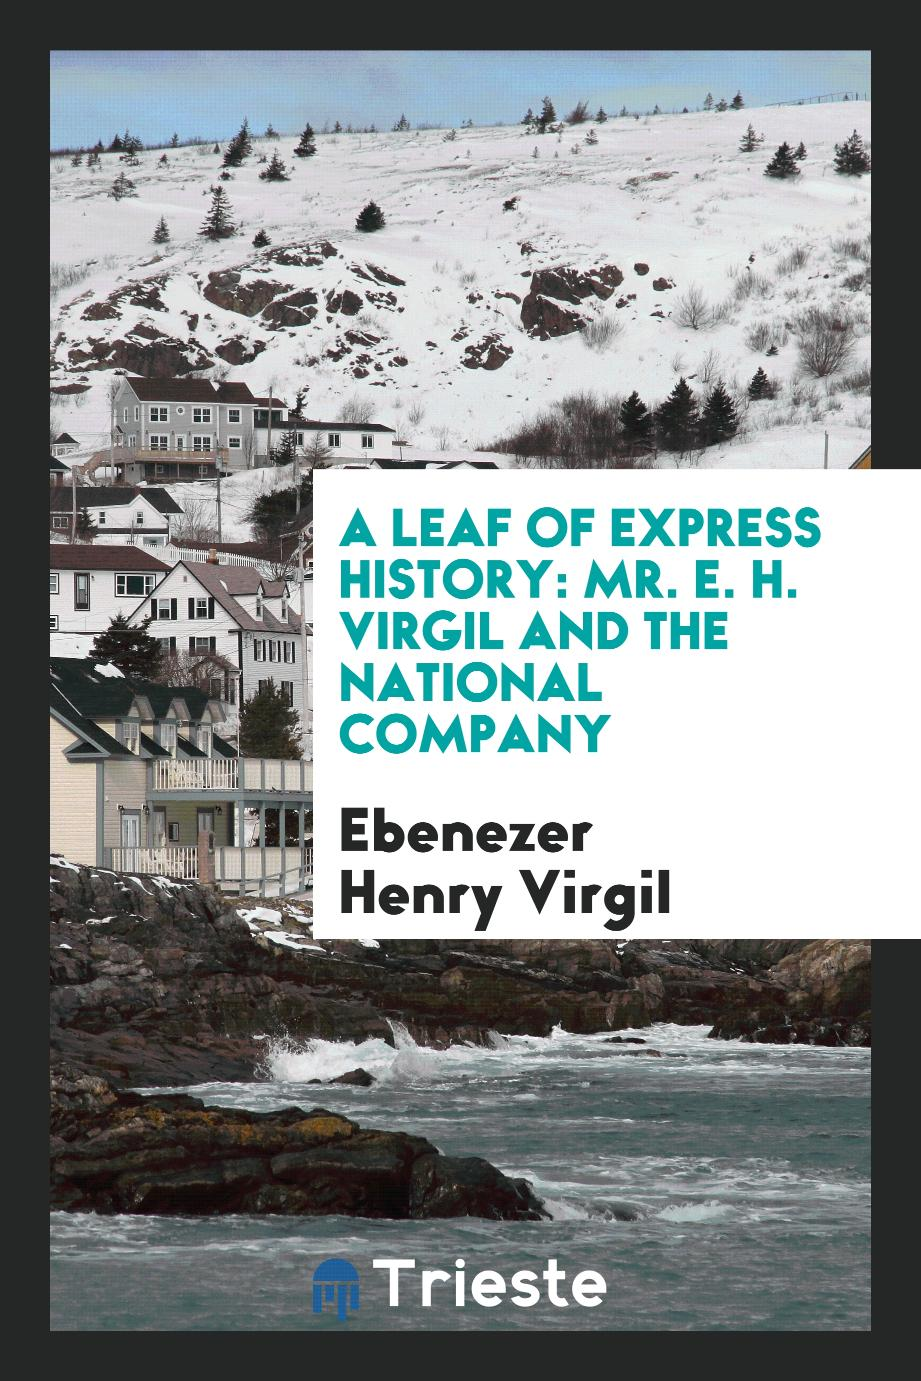 A Leaf of Express History: Mr. E. H. Virgil and the National Company